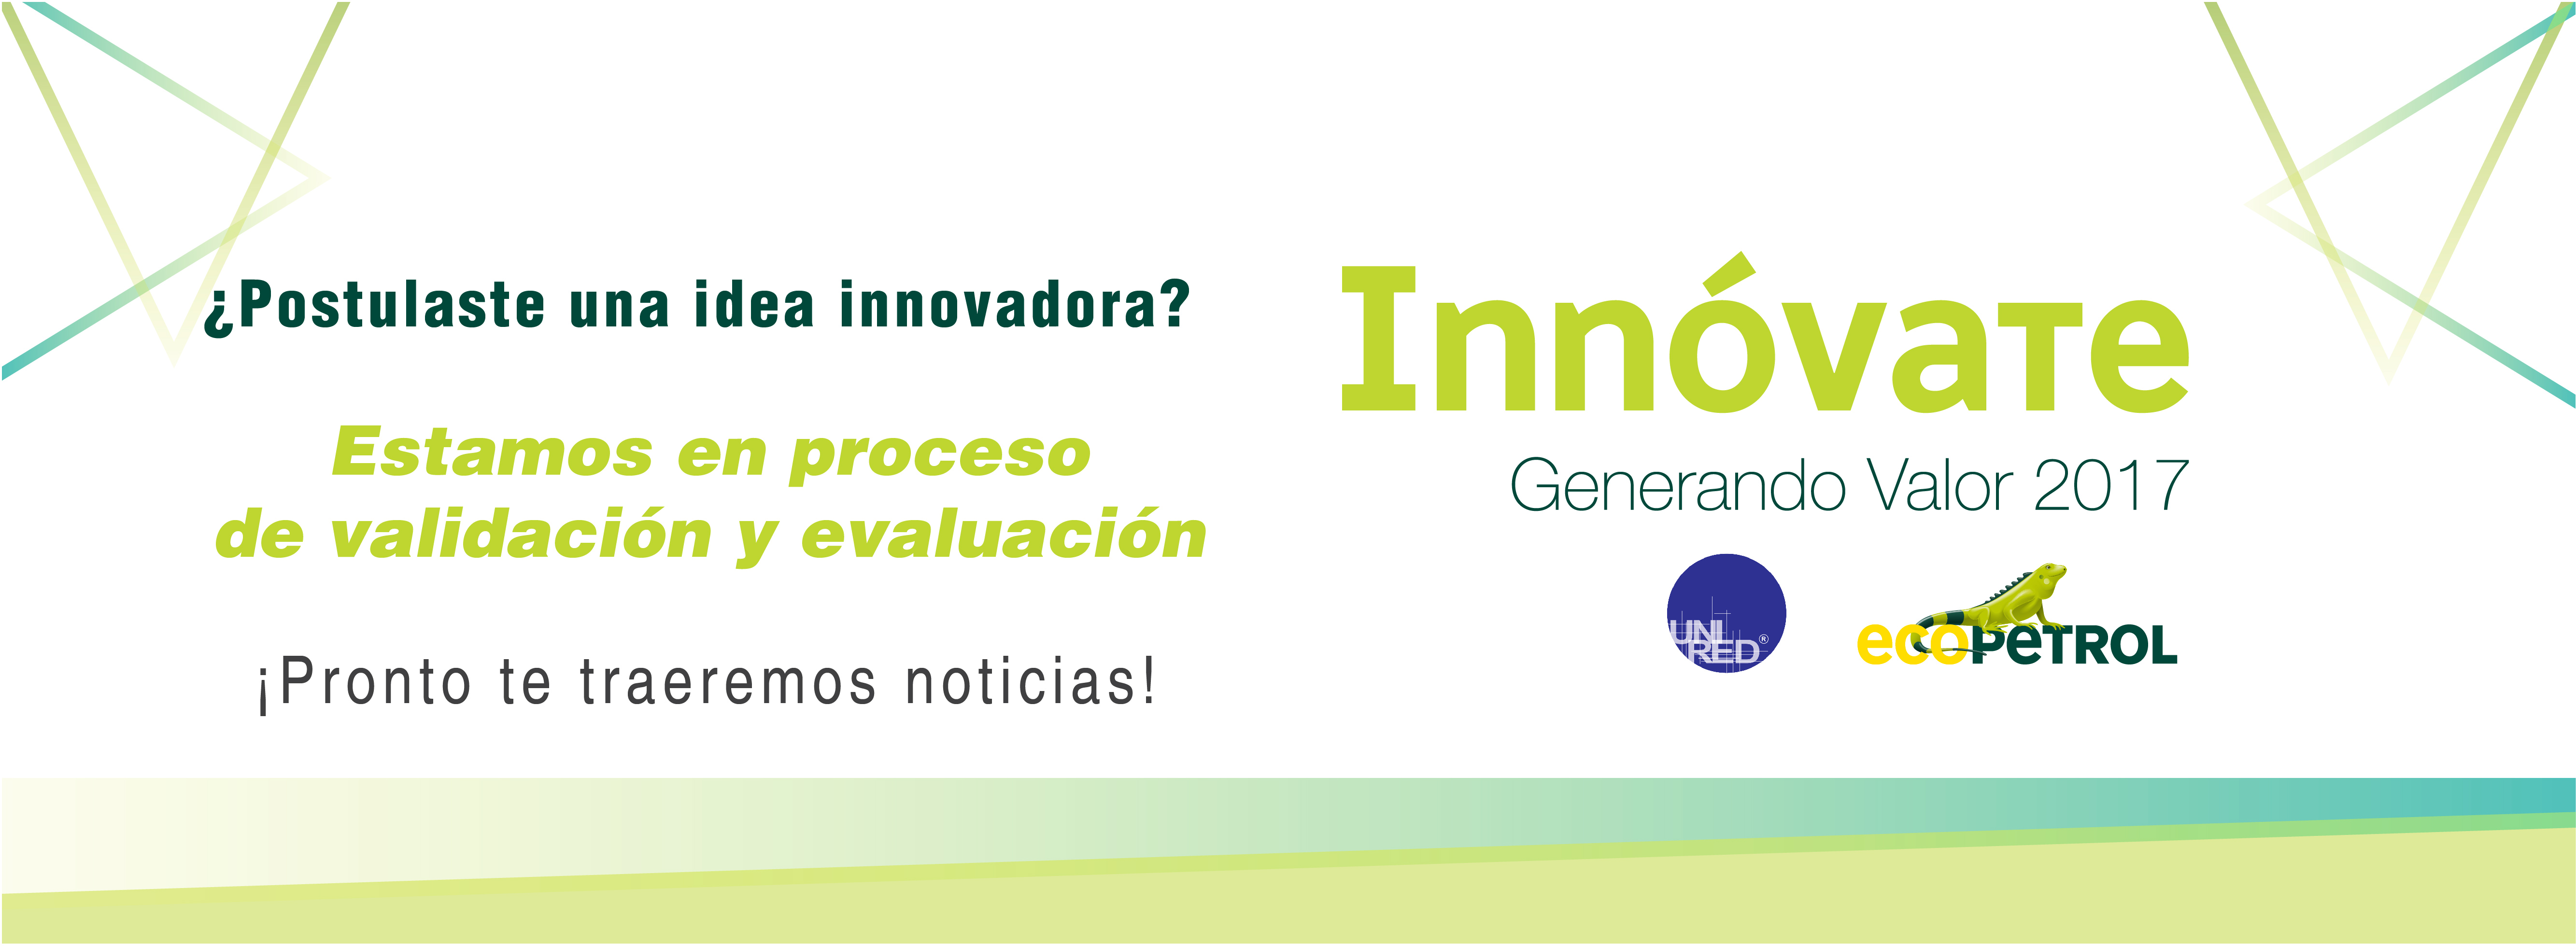 banner innovate validacion requisitos1280x470px